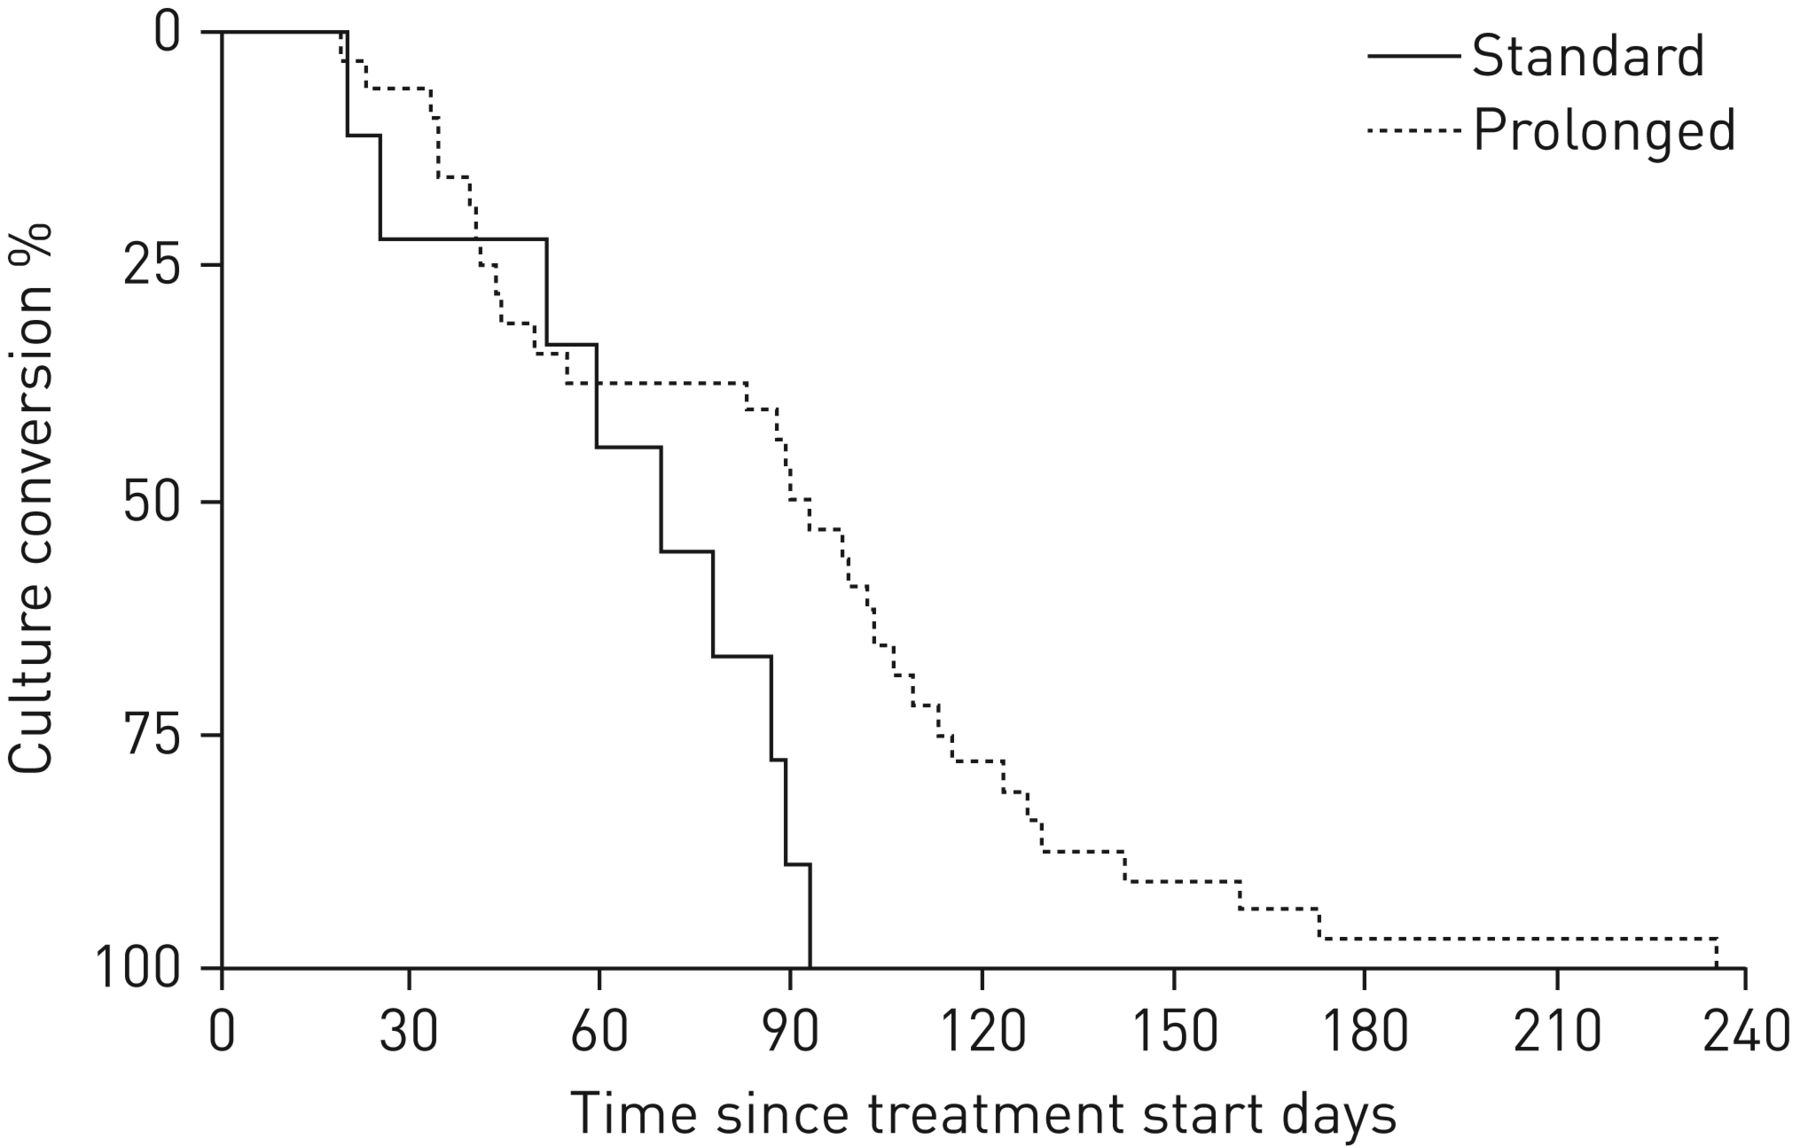 Long-term outcome and safety of prolonged bedaquiline